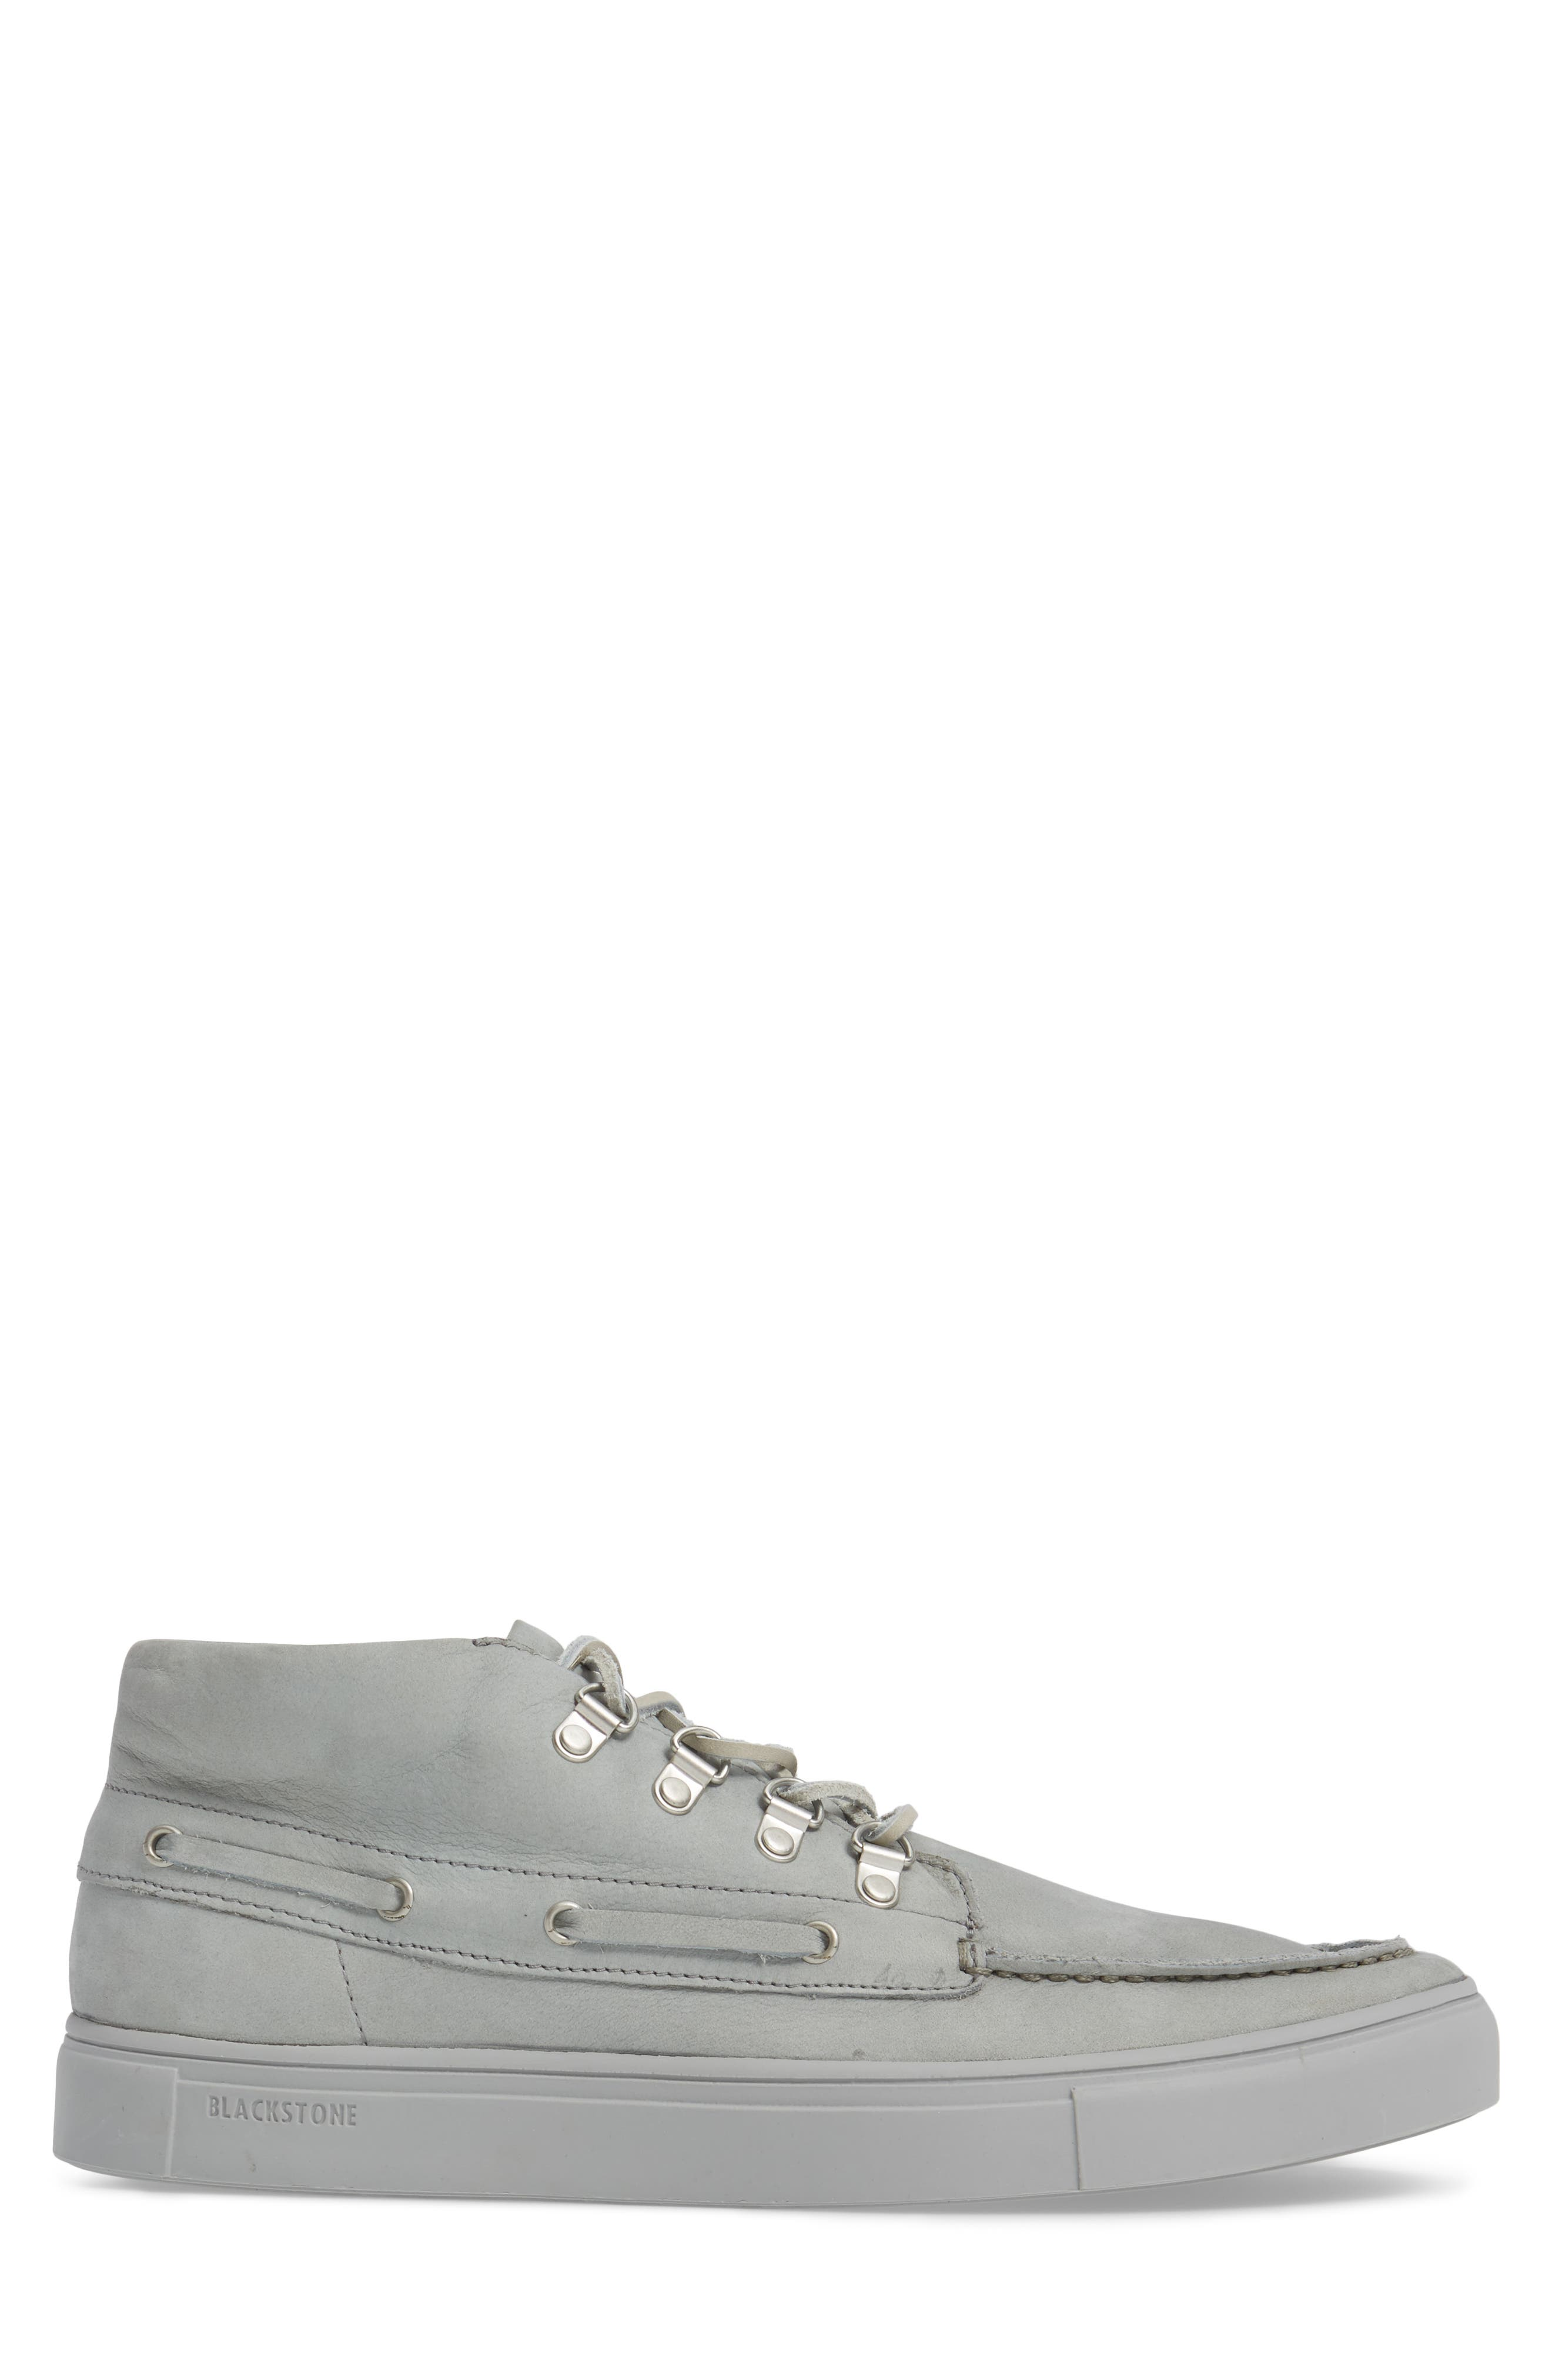 NM09 Mid Top Boat Sneaker,                             Alternate thumbnail 3, color,                             Limestone Leather